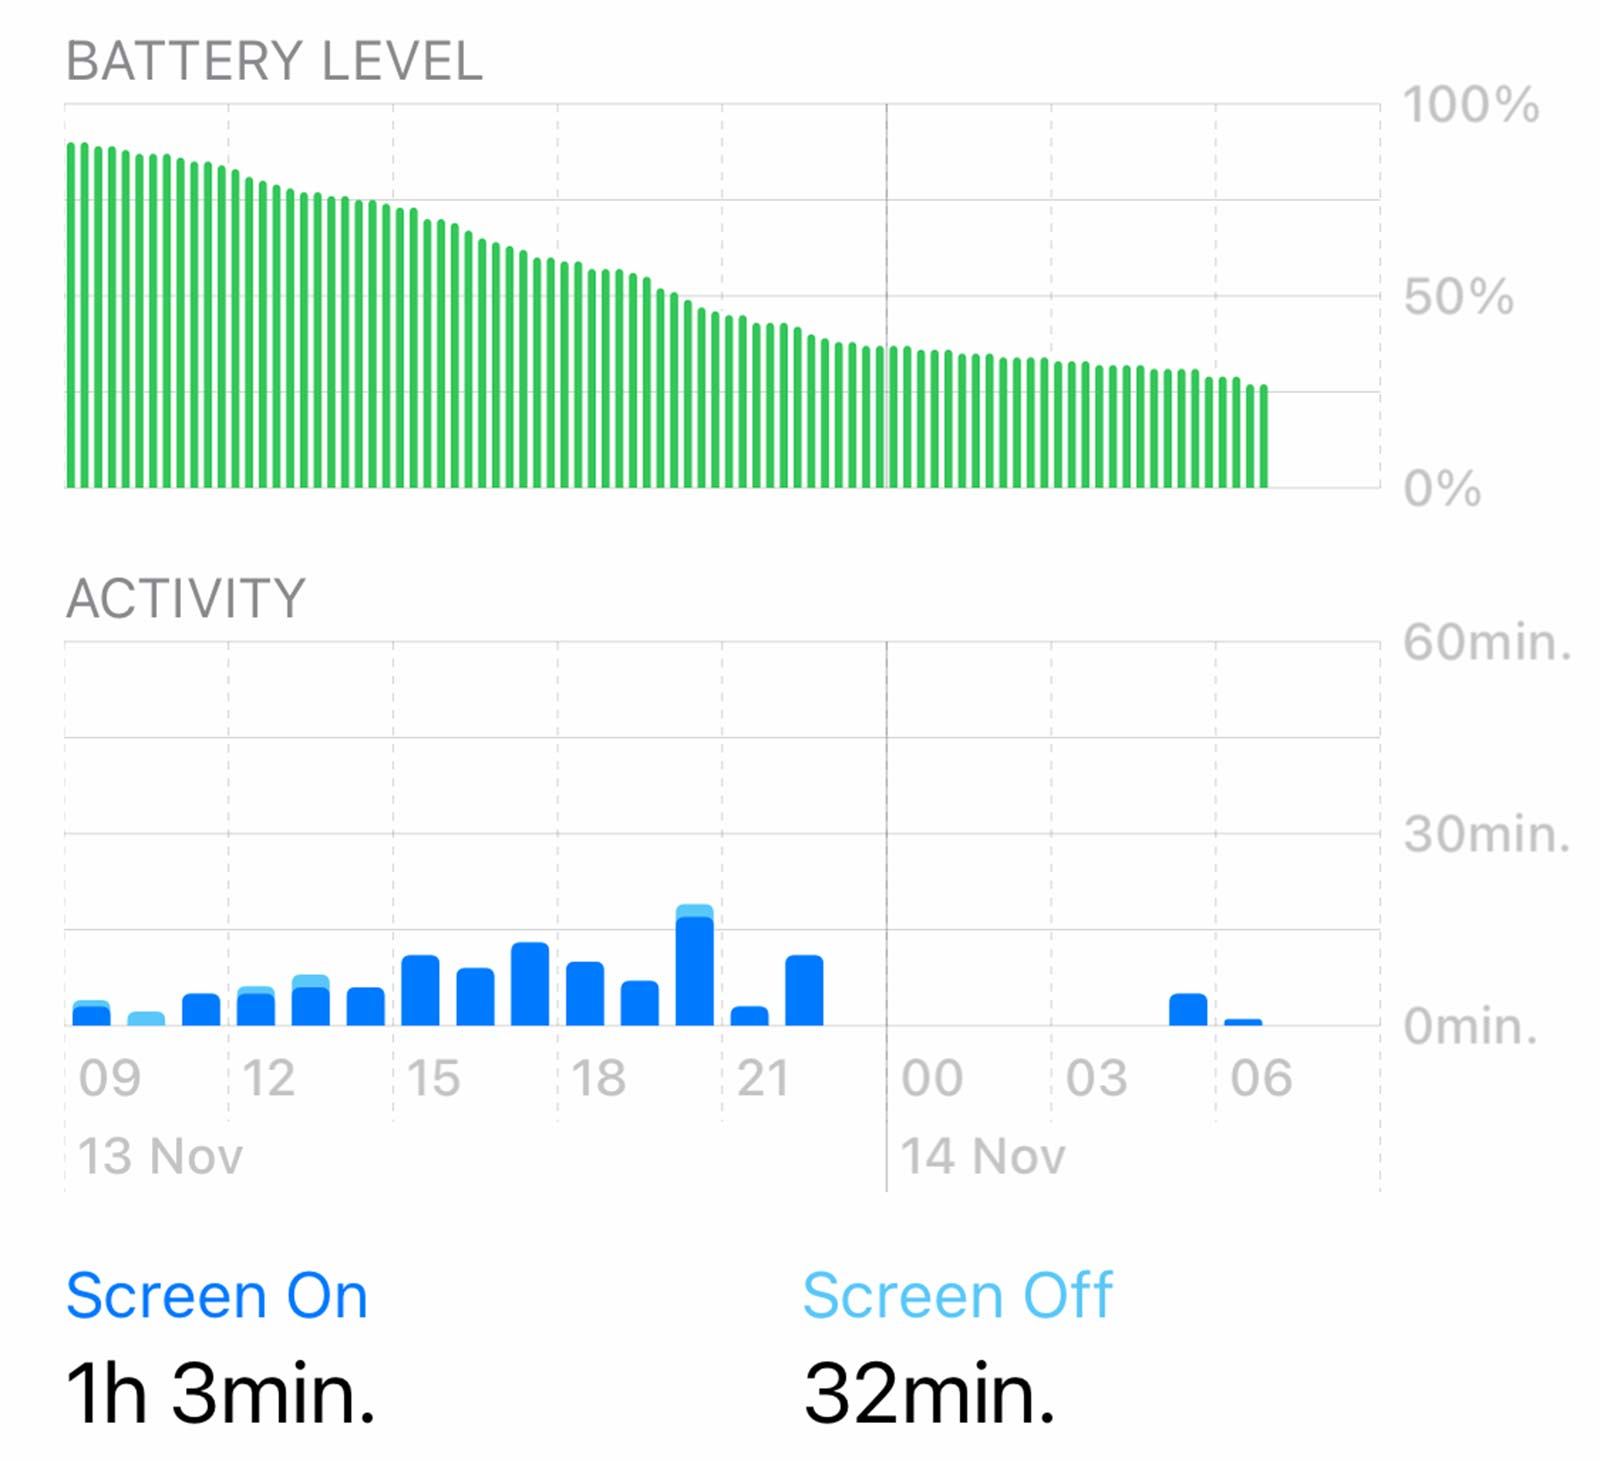 Battery life on the Mini